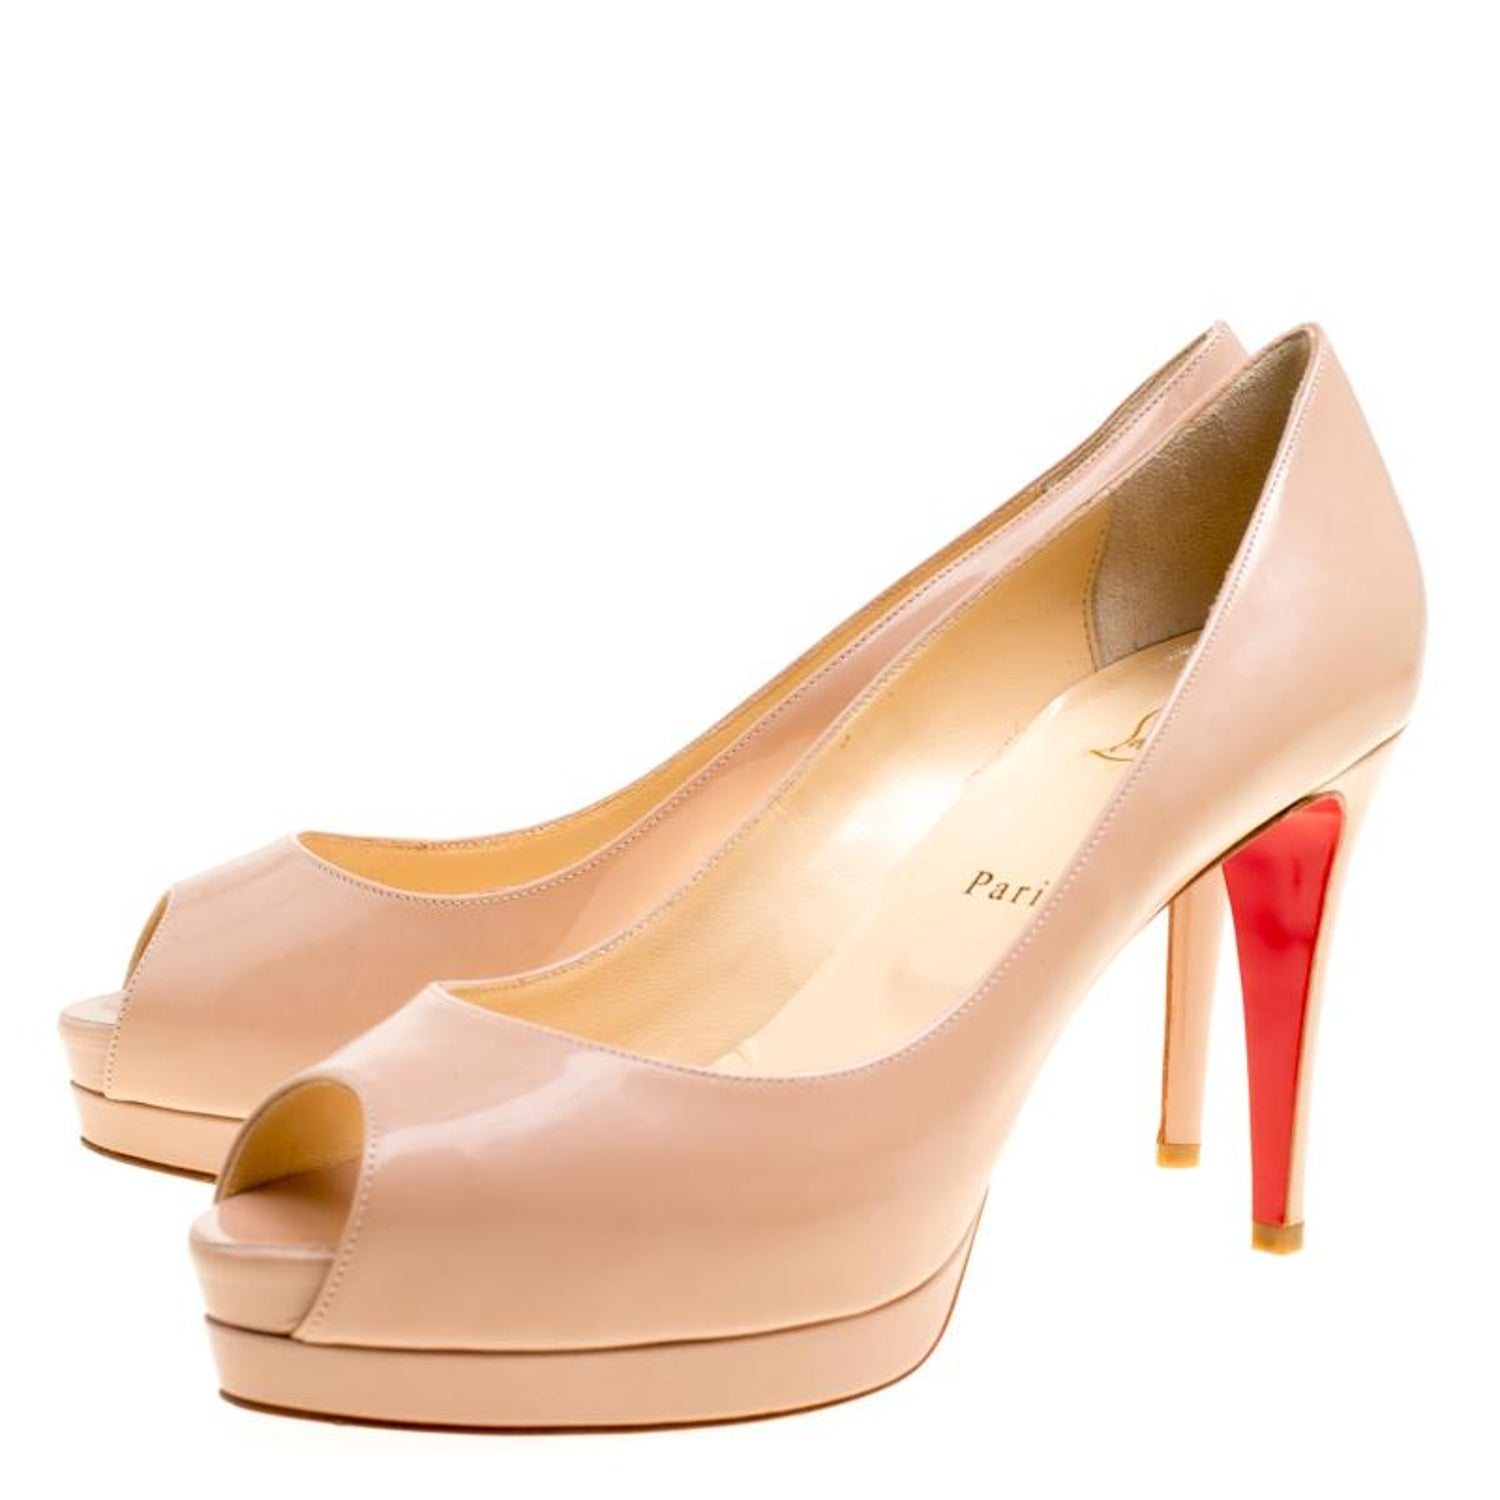 bdb763c9ad Christian Louboutin Nude Patent Leather Altadama Platform Pumps Size 40 For  Sale at 1stdibs